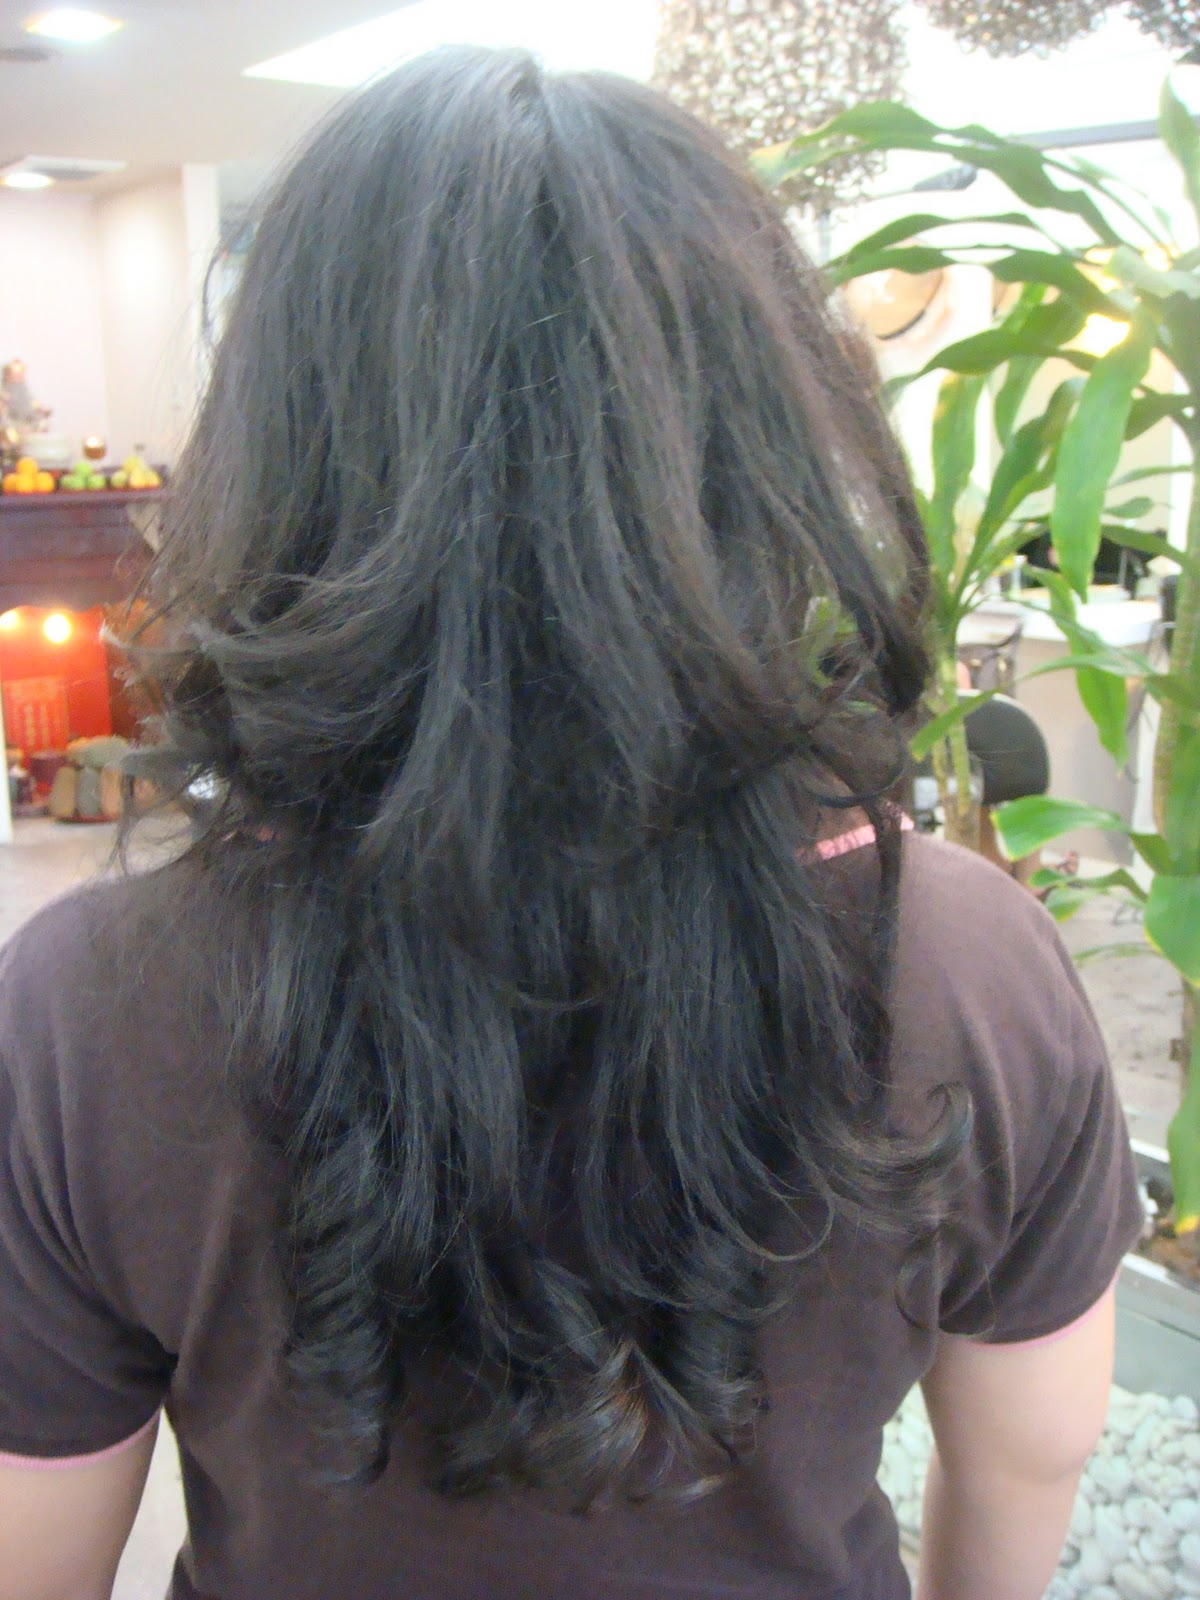 how to curl long hair start from front or back